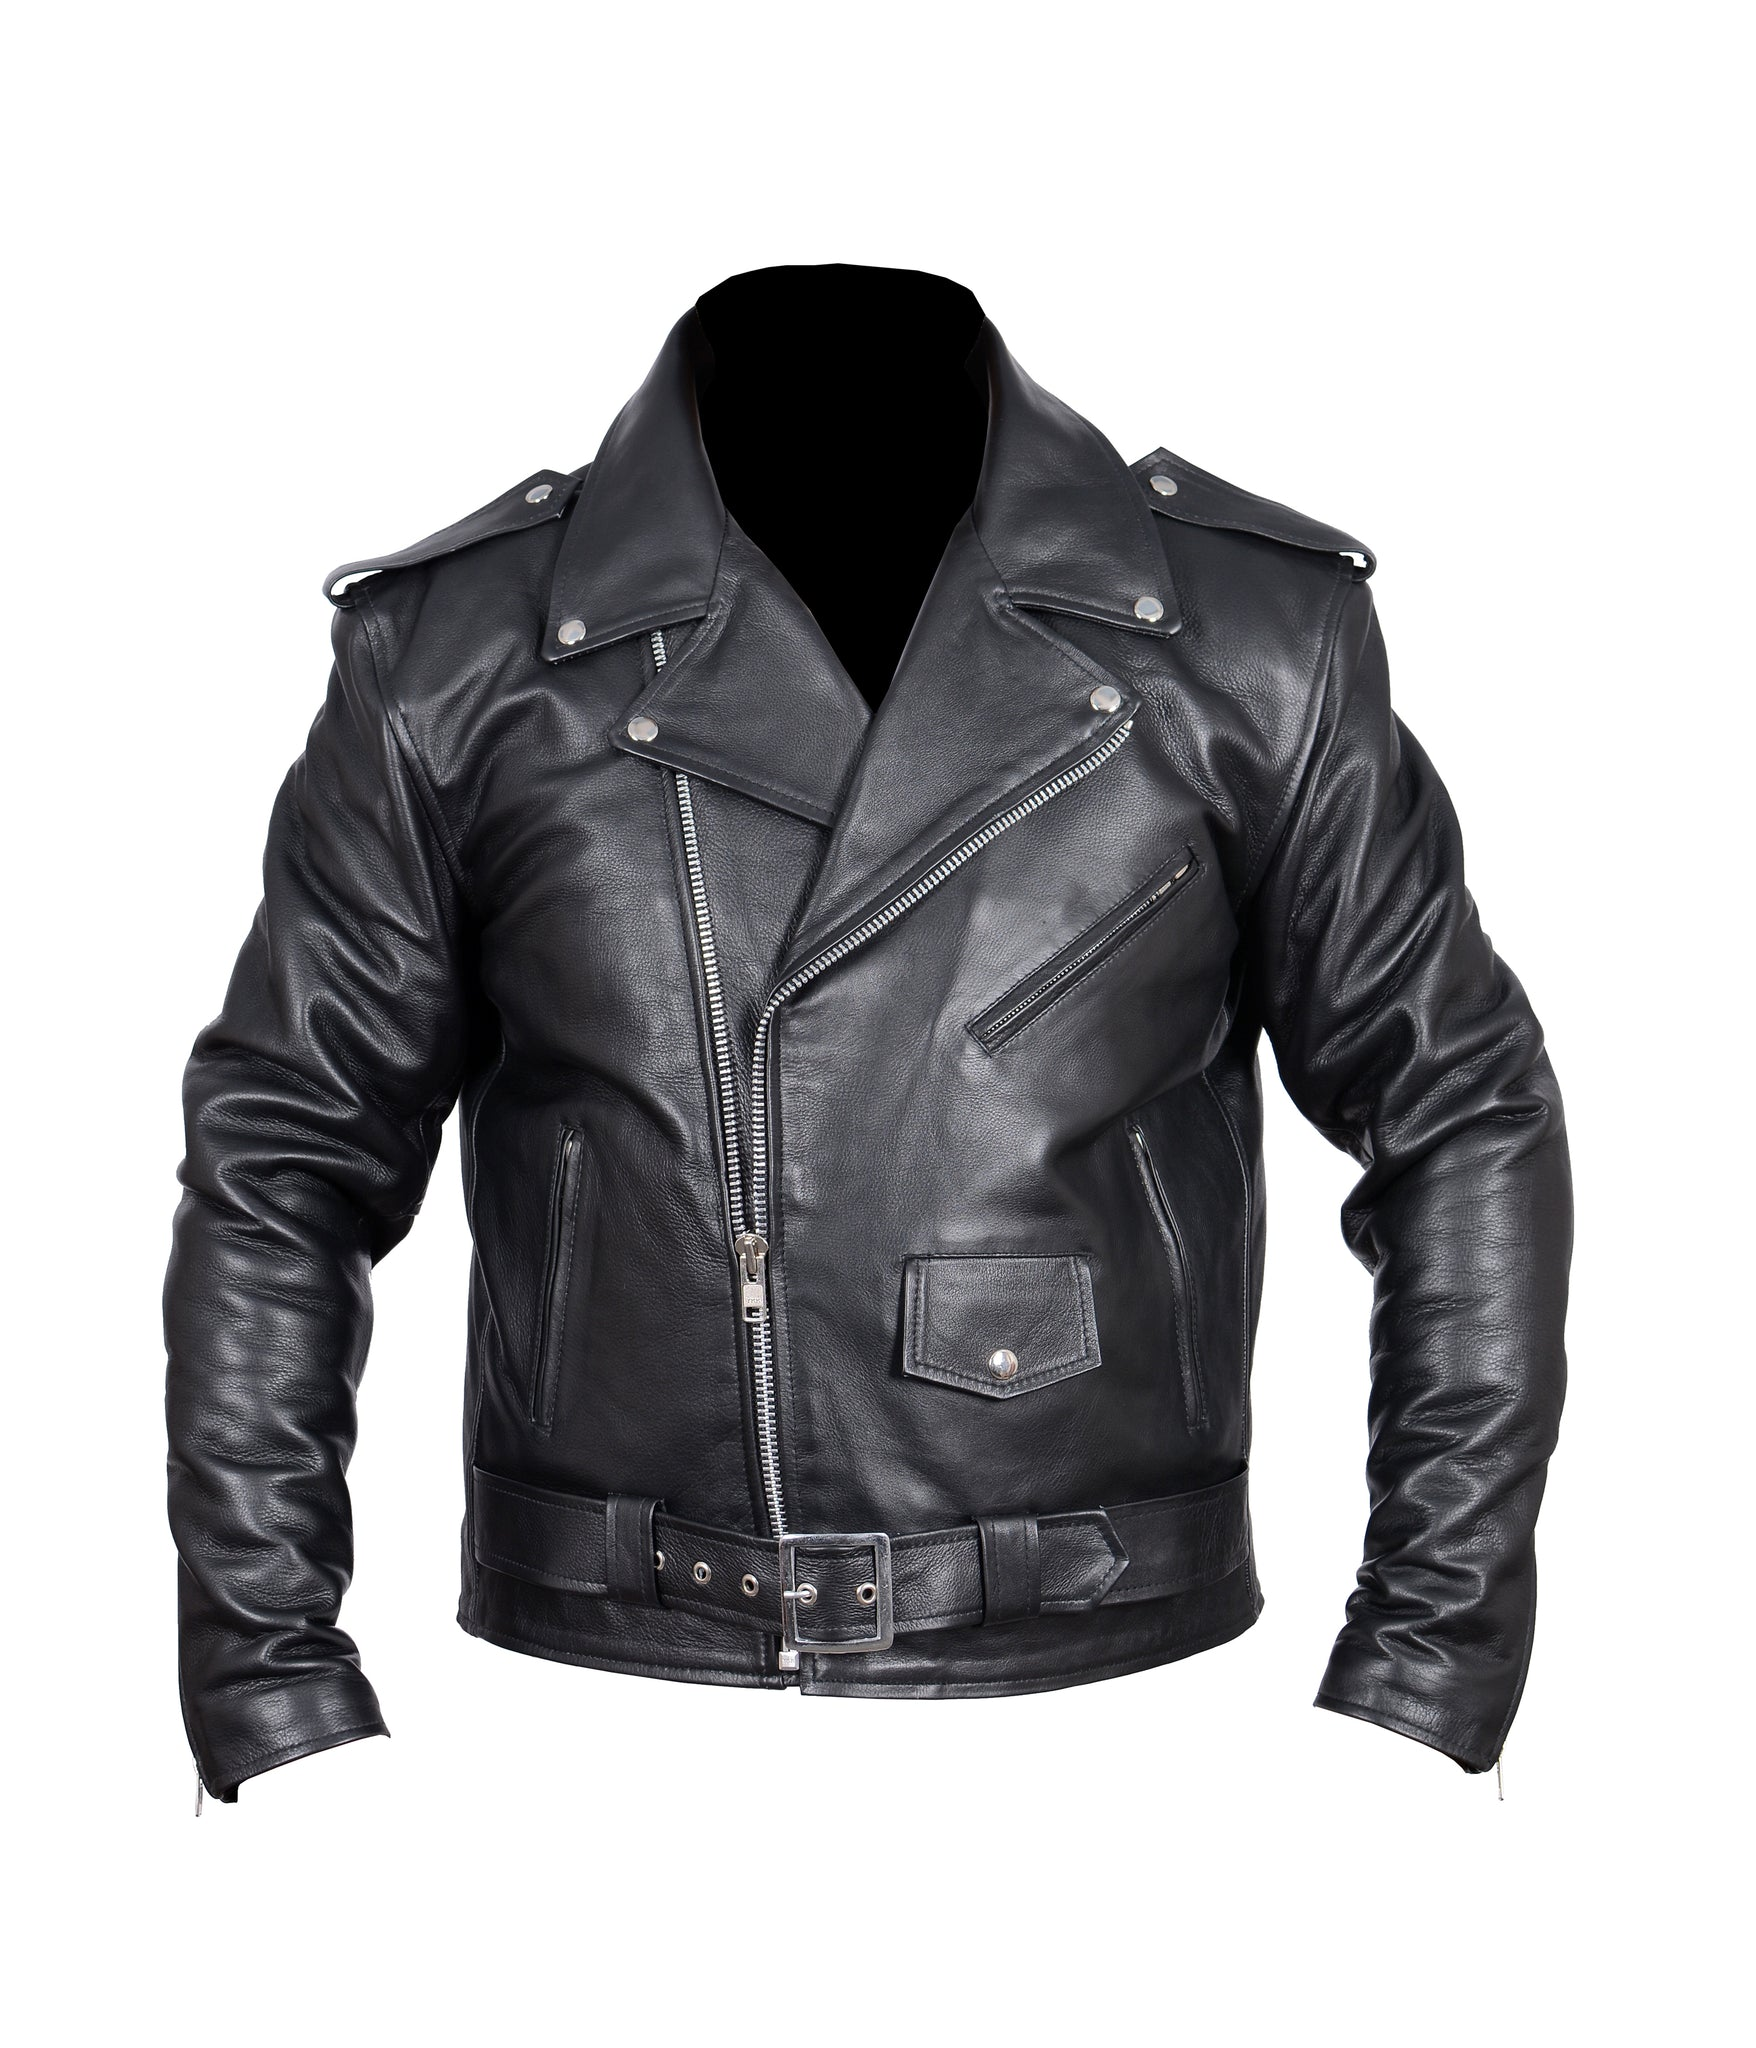 Diapo Leather Men's Black Rivet Asymmetrical  Cowhide Vegetable Tanned Leather Jacket    40% OFF